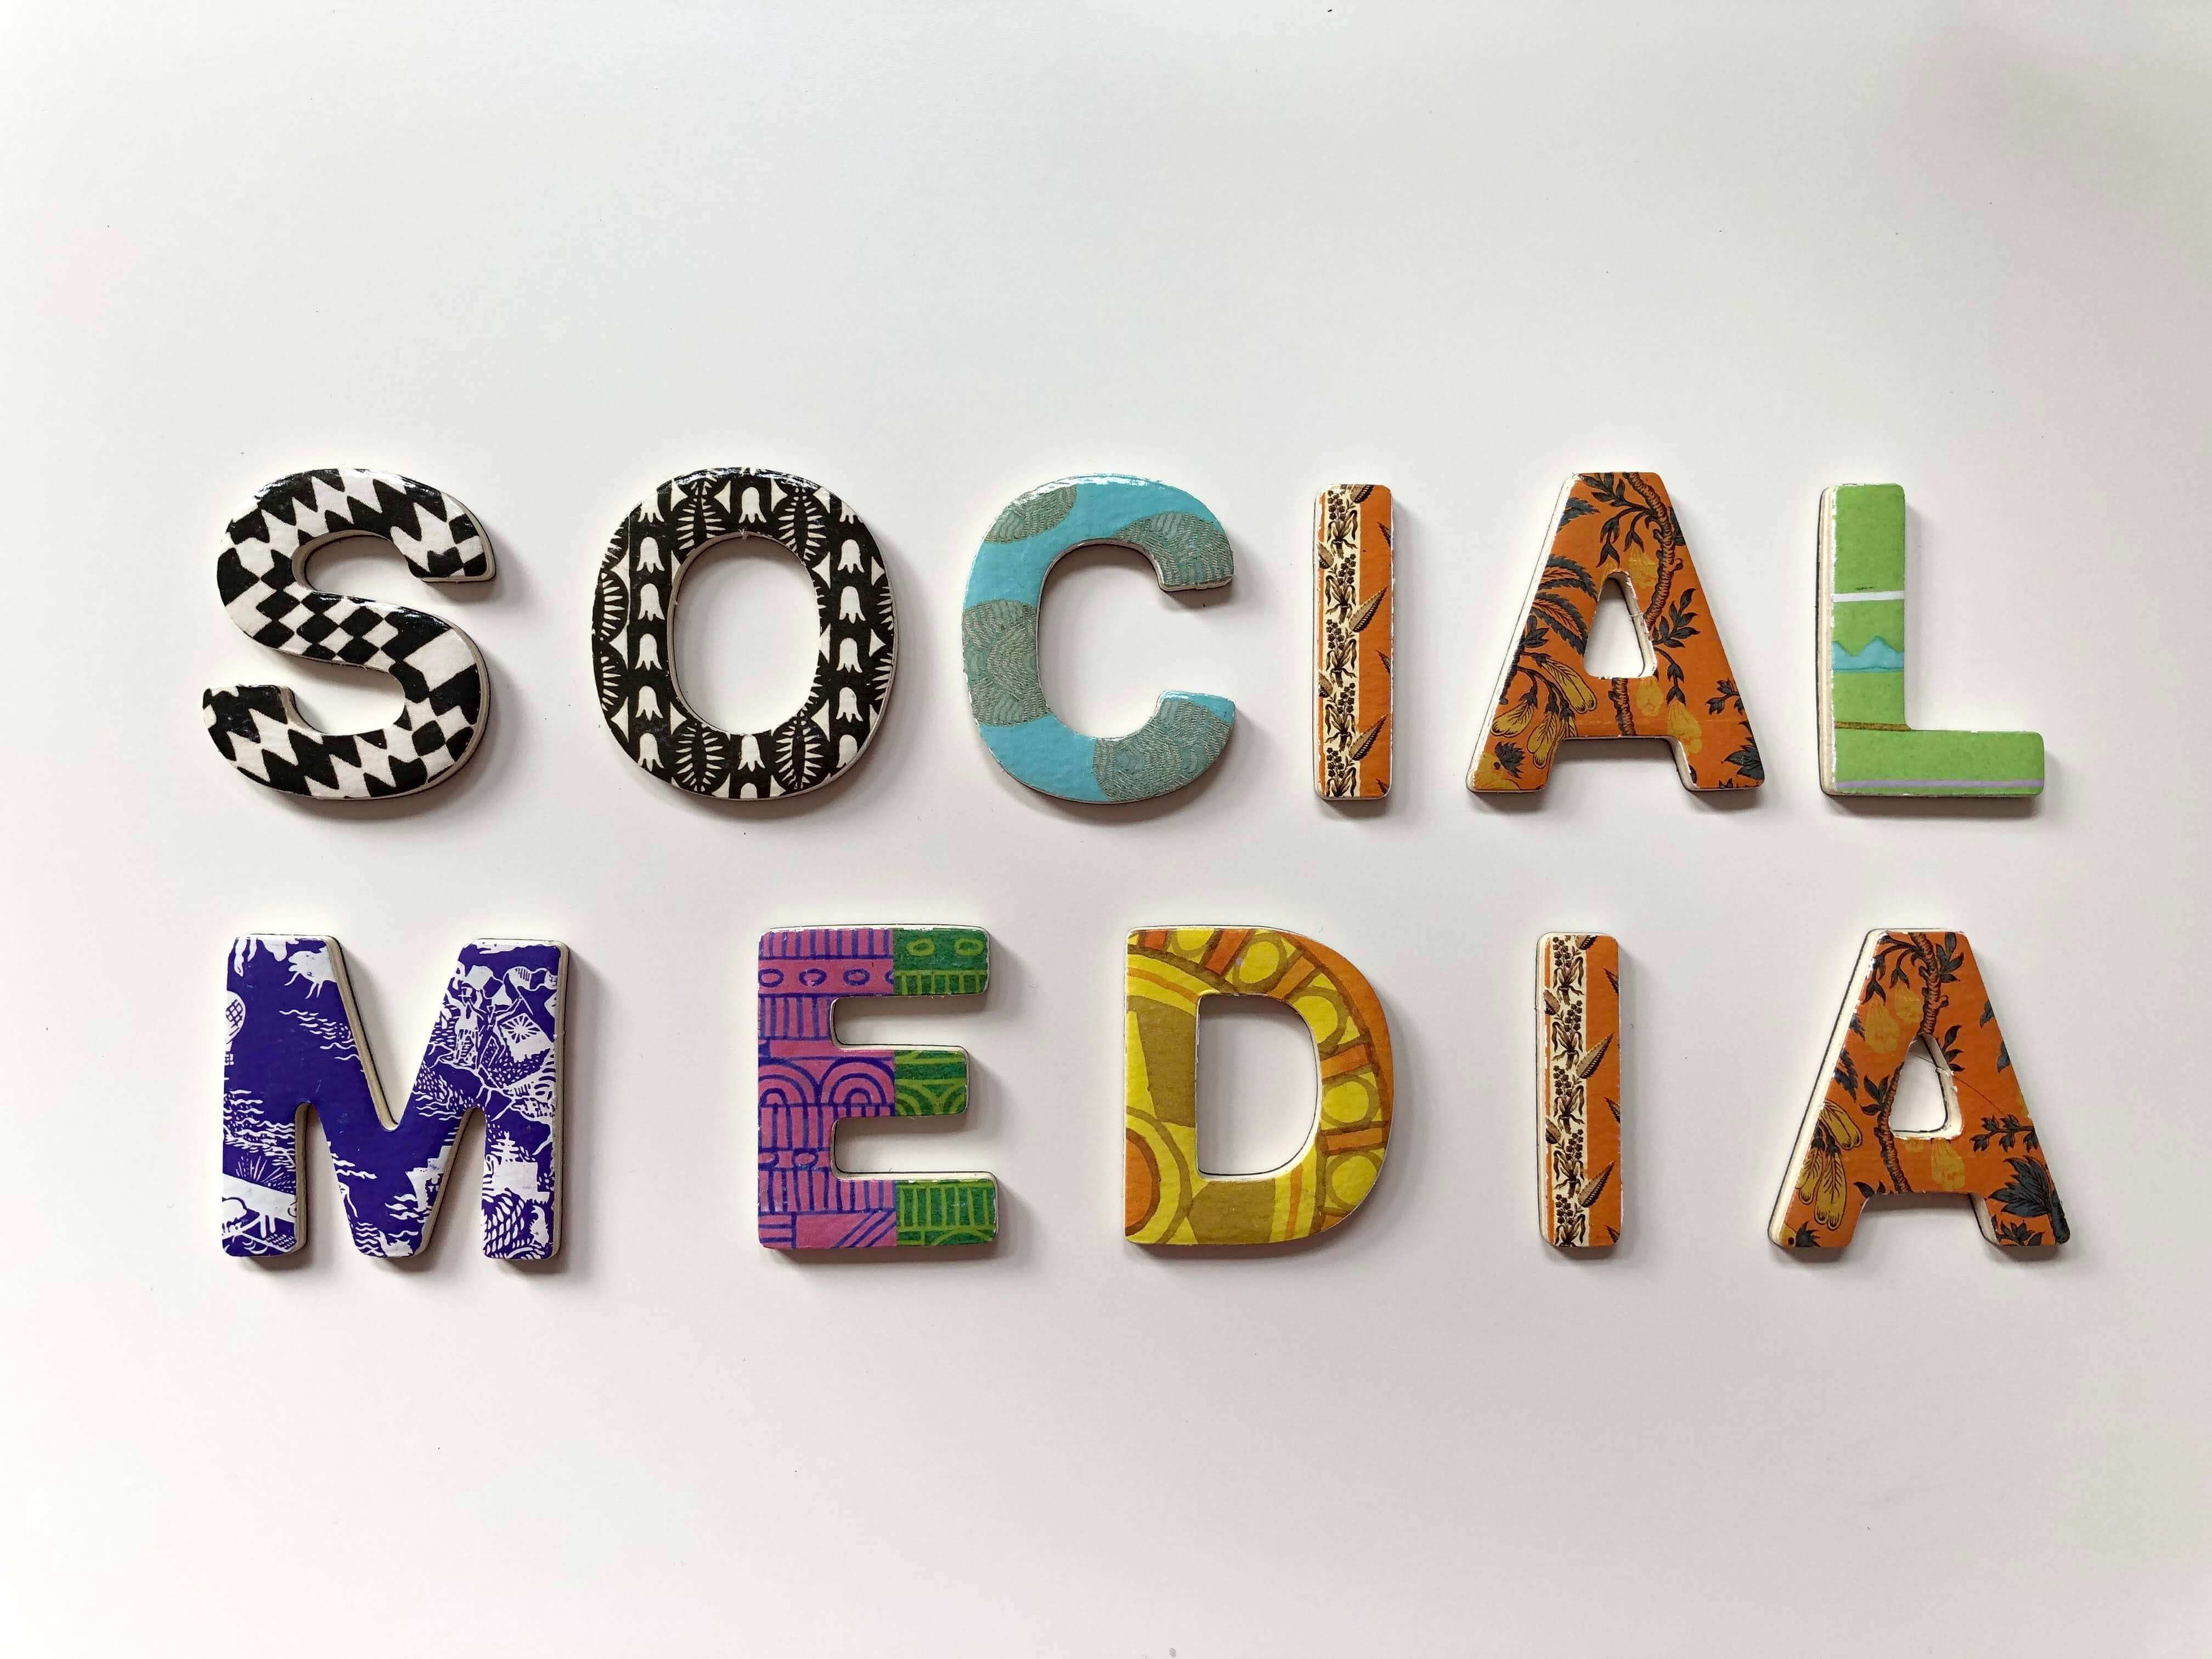 You should think again why you use social media and see if there is an addition